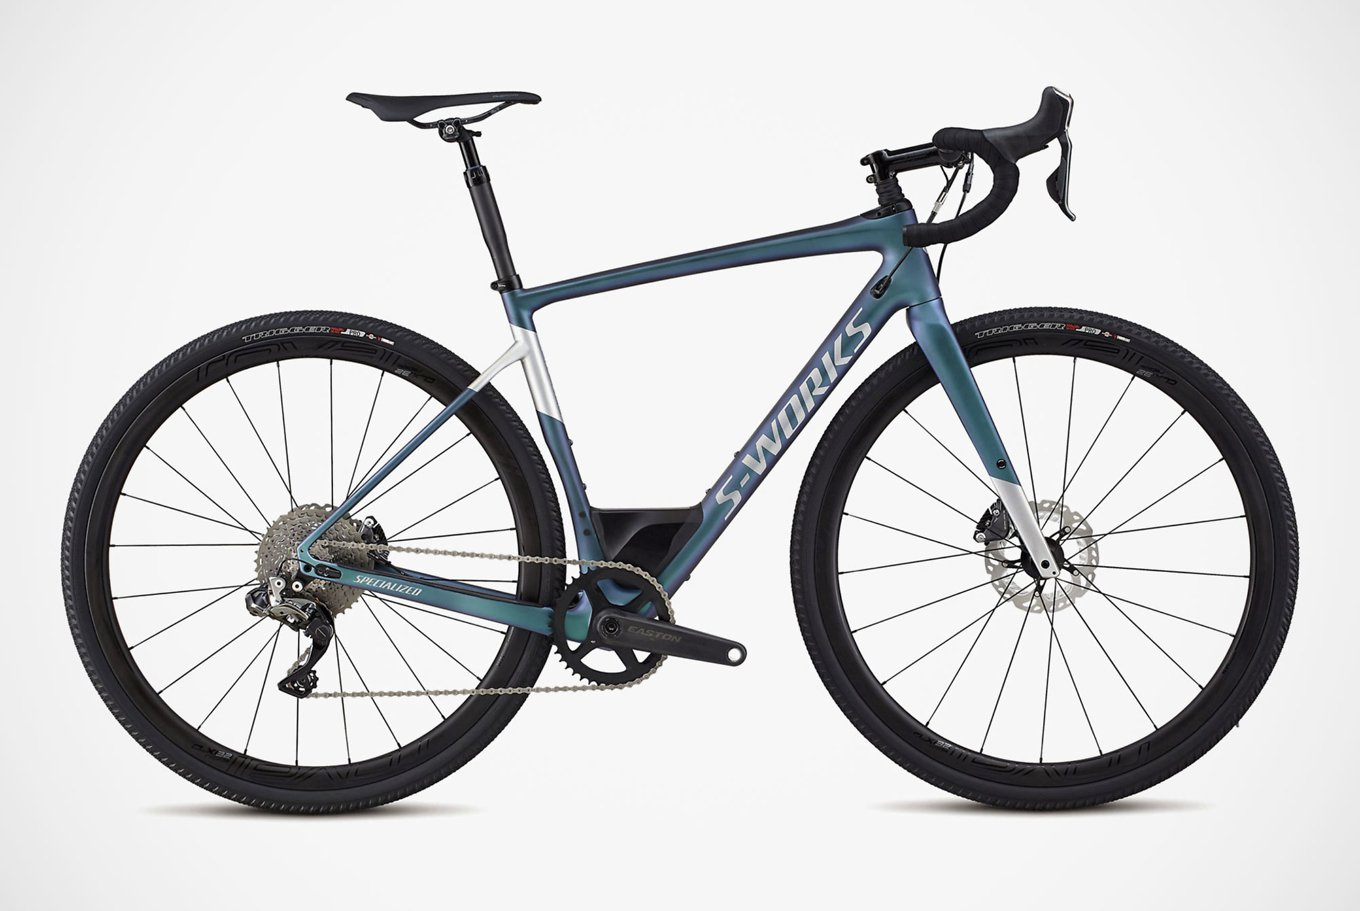 2018 S-Works Diverge